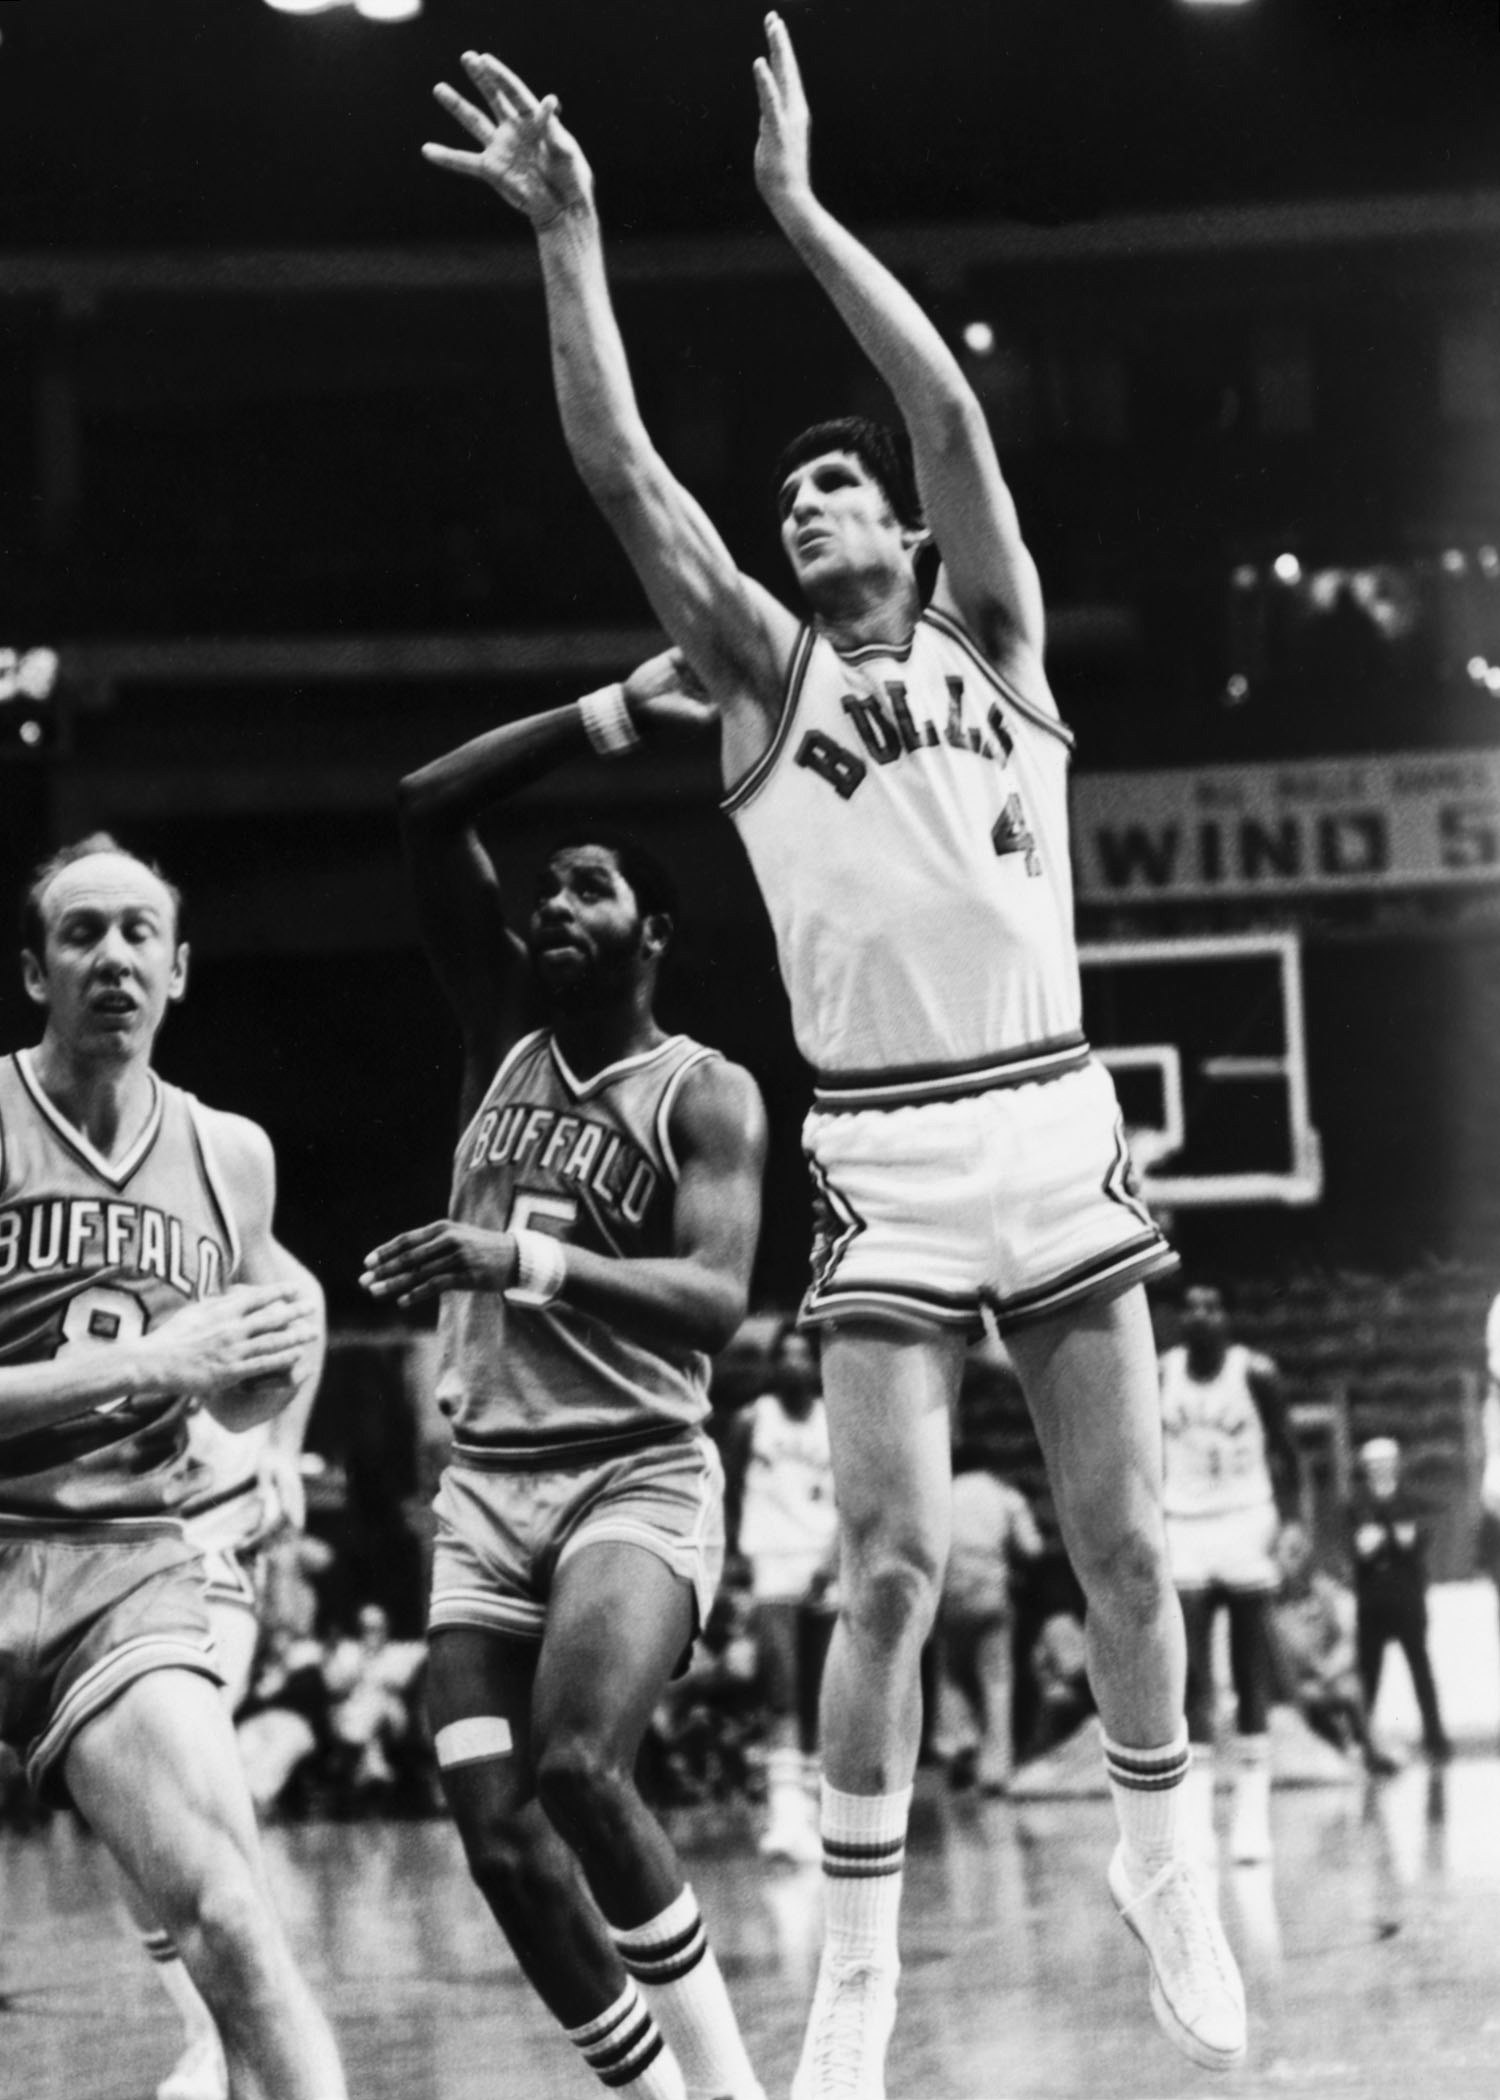 Jerry Sloan shoots the ball